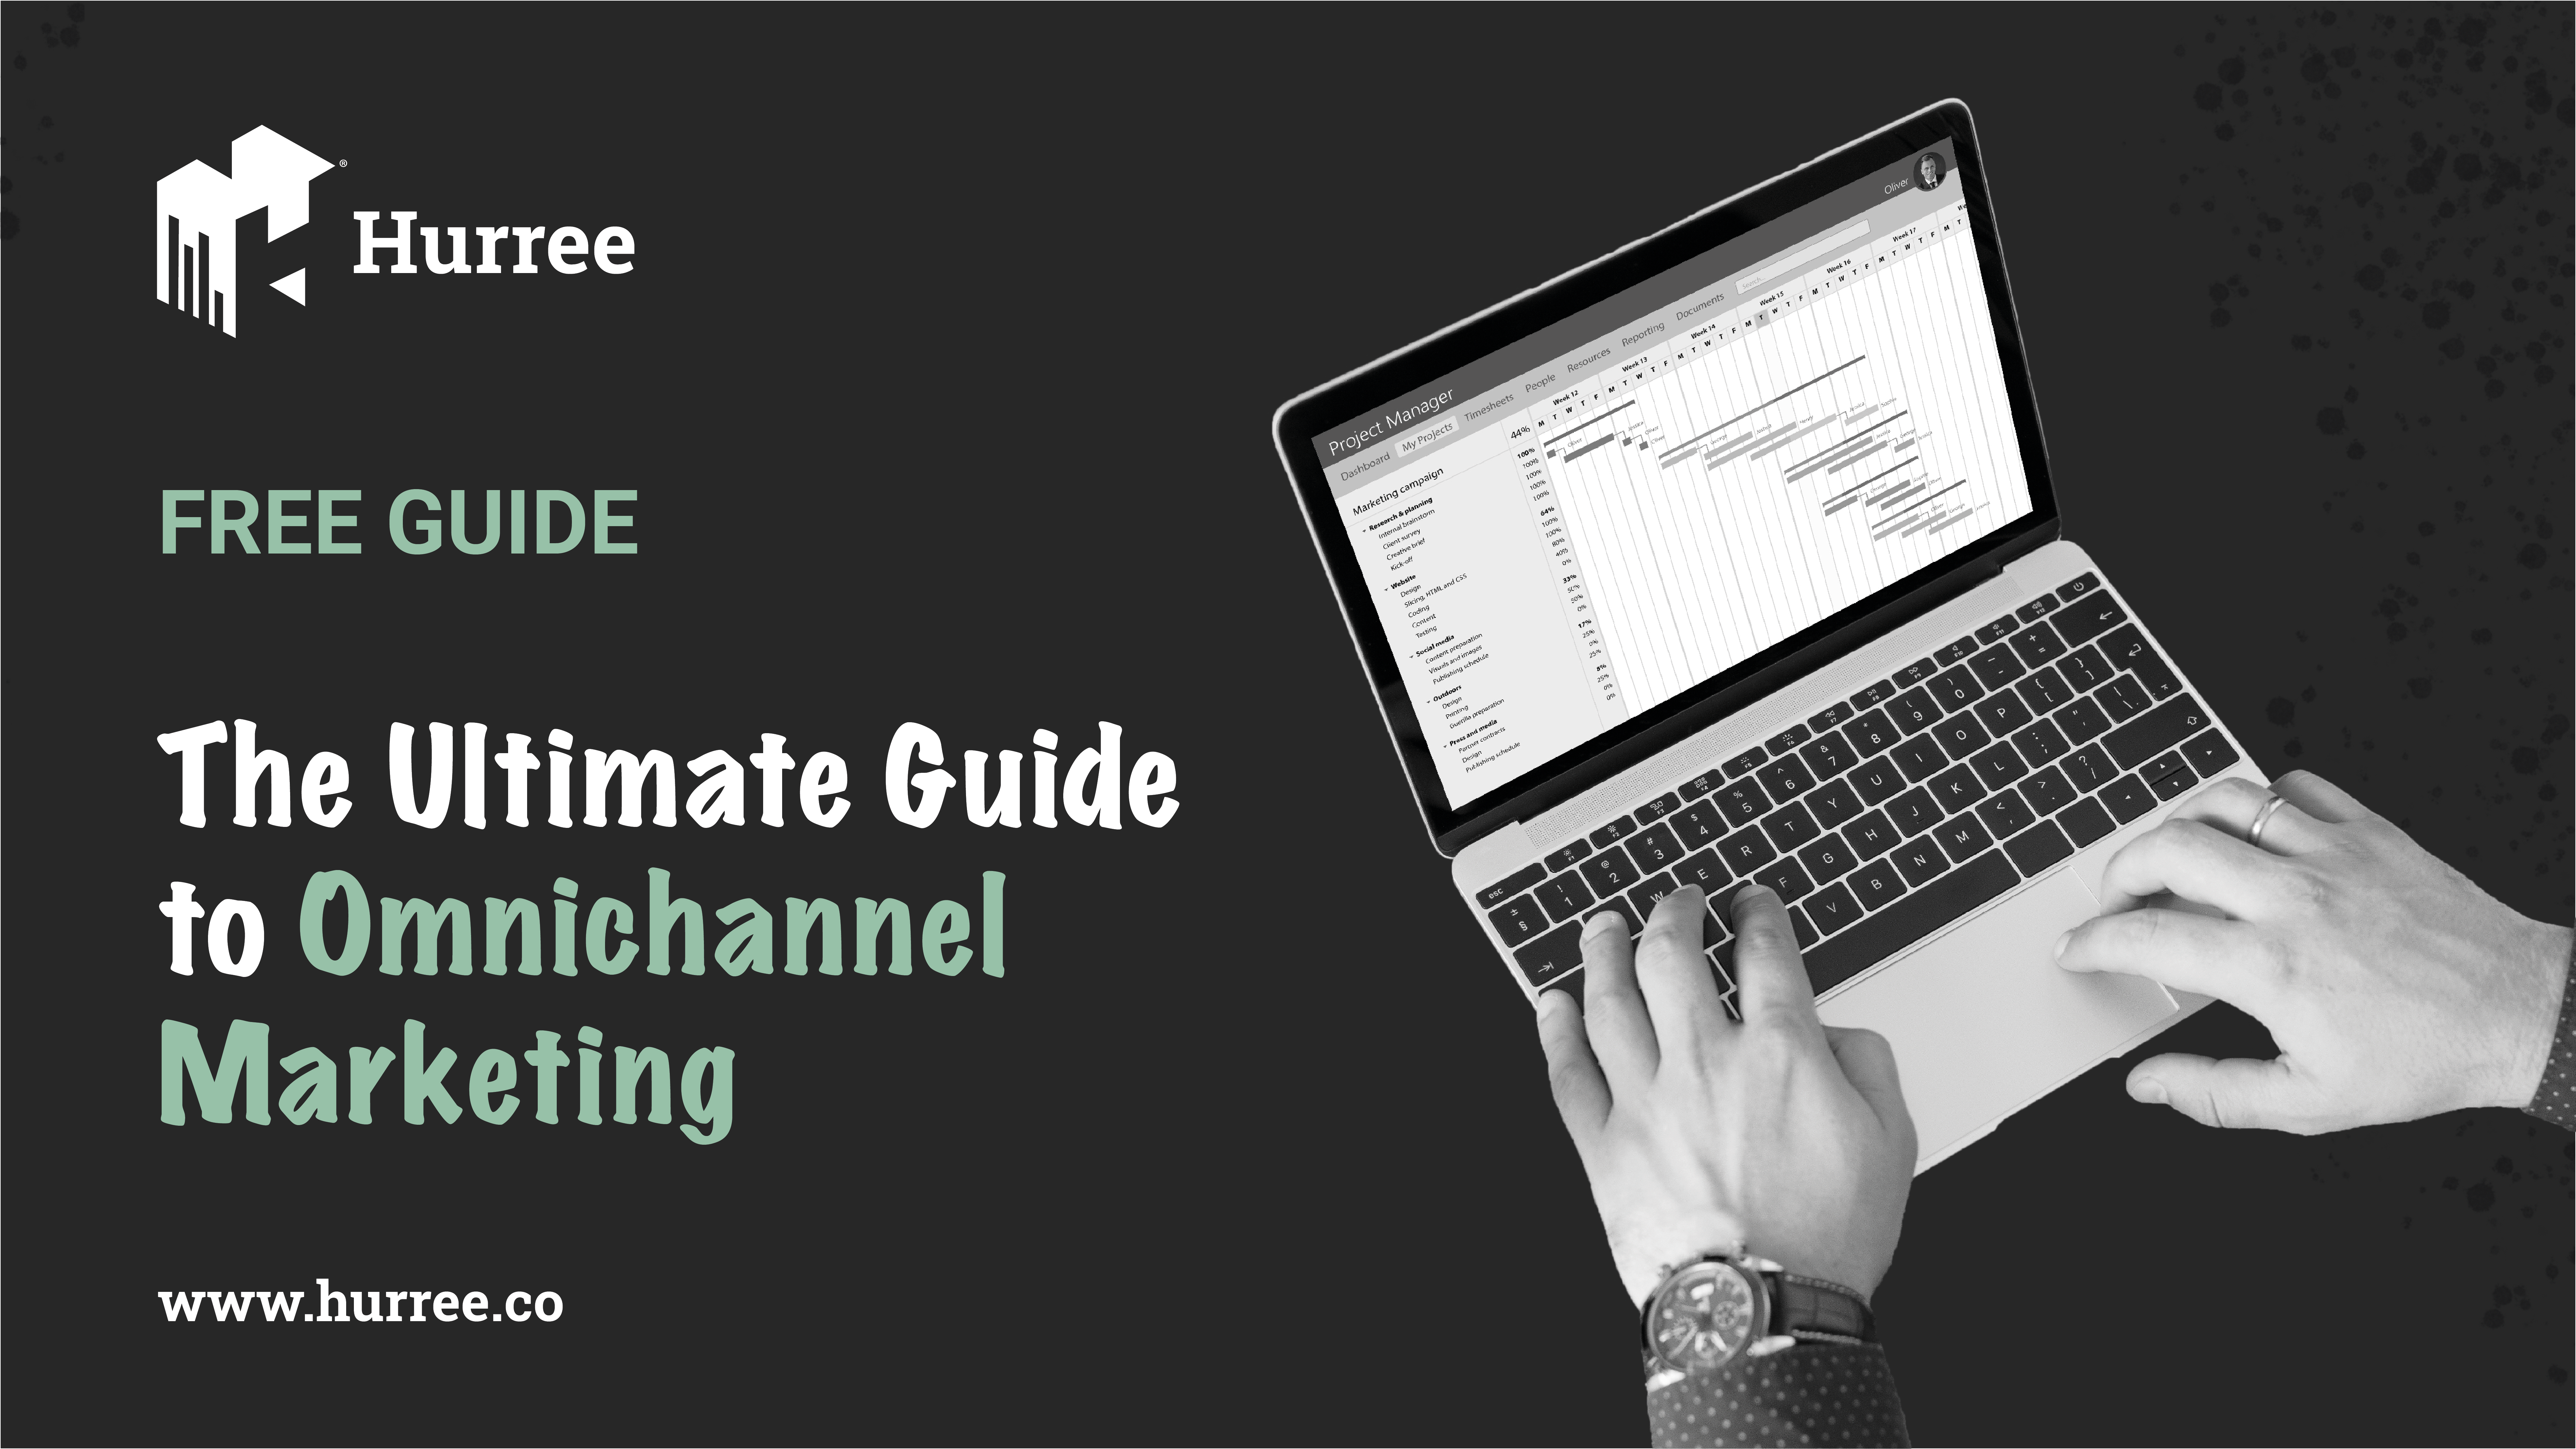 The Ultimate Guide to Omnichannel Marketing: Download Here